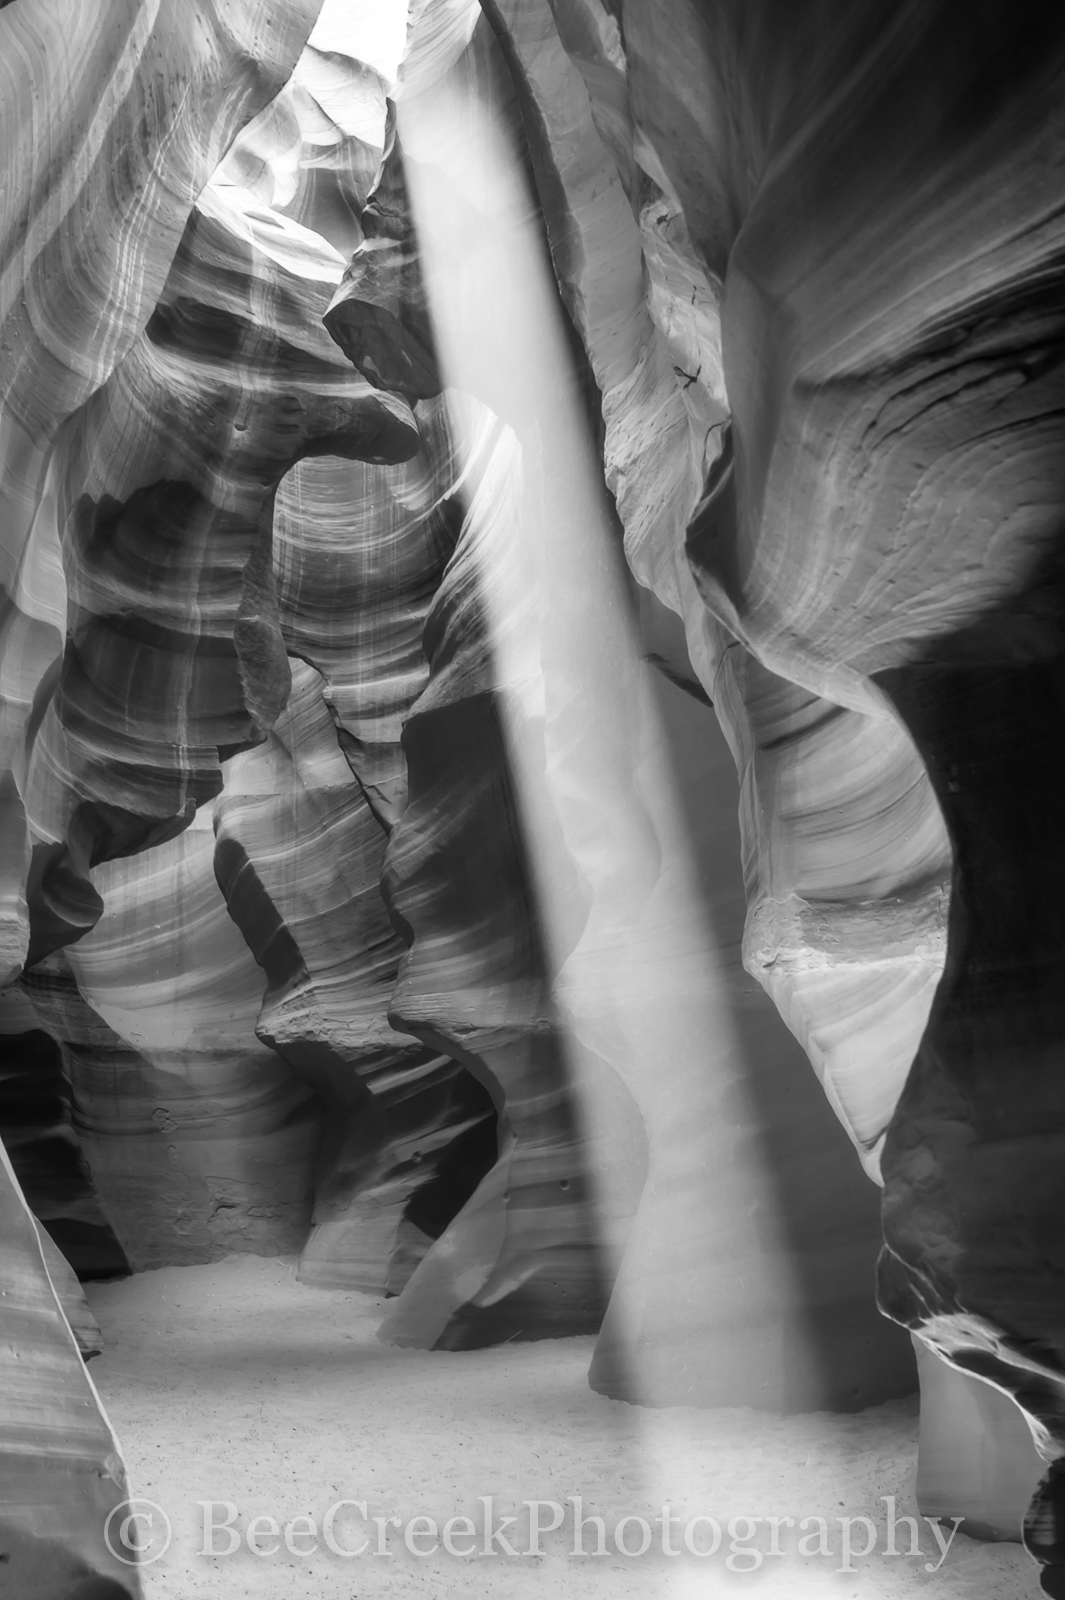 AZ, Arizona, Fine art photos, Page AZ, Peter lik, antelope canyon, antelope canyons az, best sellers, black and white, desert southwest, geologic landscape, geology, images of antelope canyon, images , photo